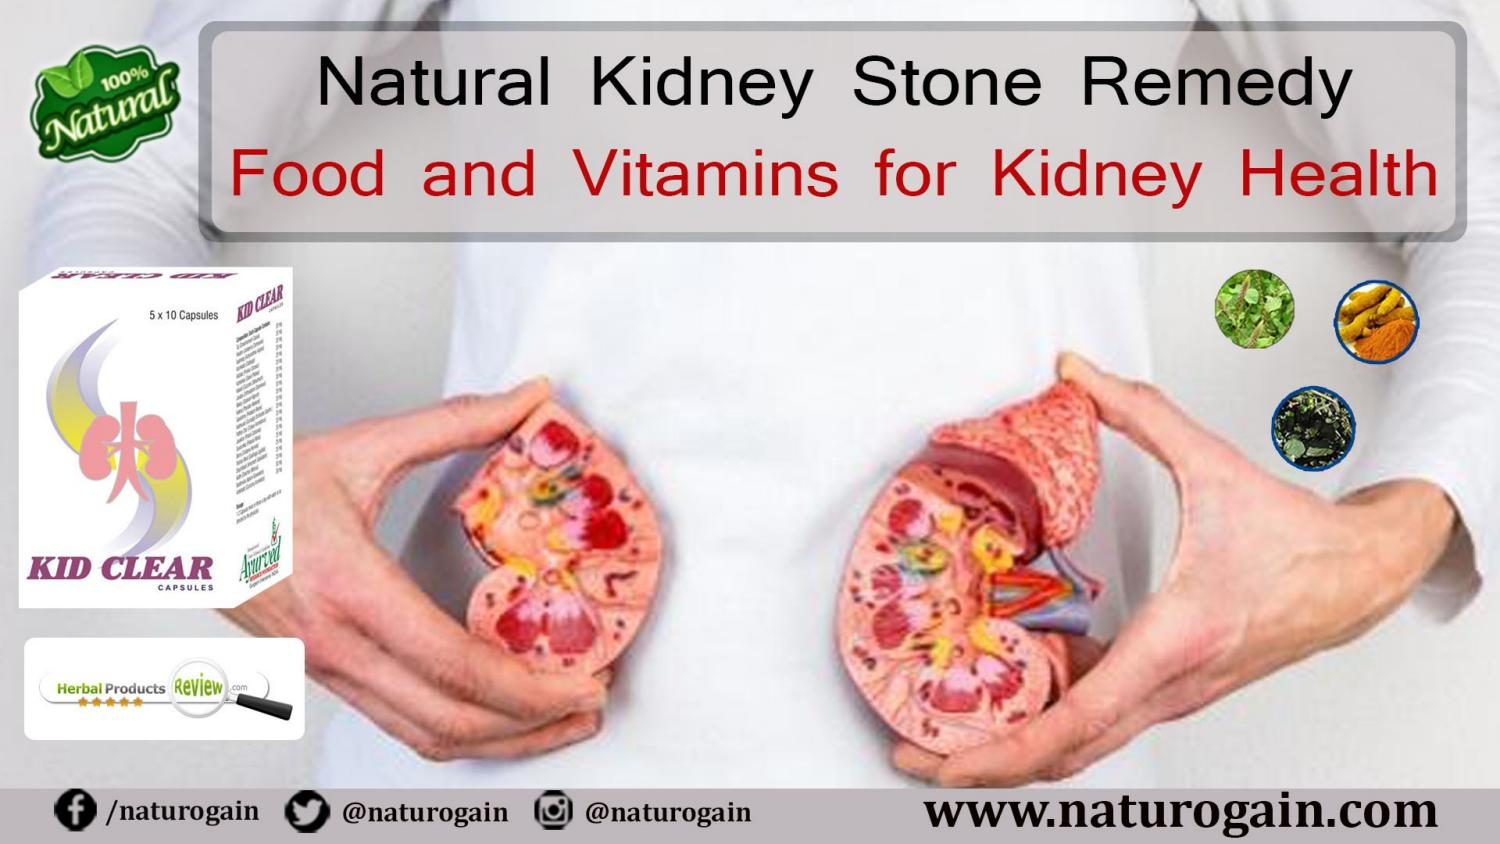 Natural Kidney Stone Remedy Food And Vitamins For Kidney Health By Charles Aleron Issuu